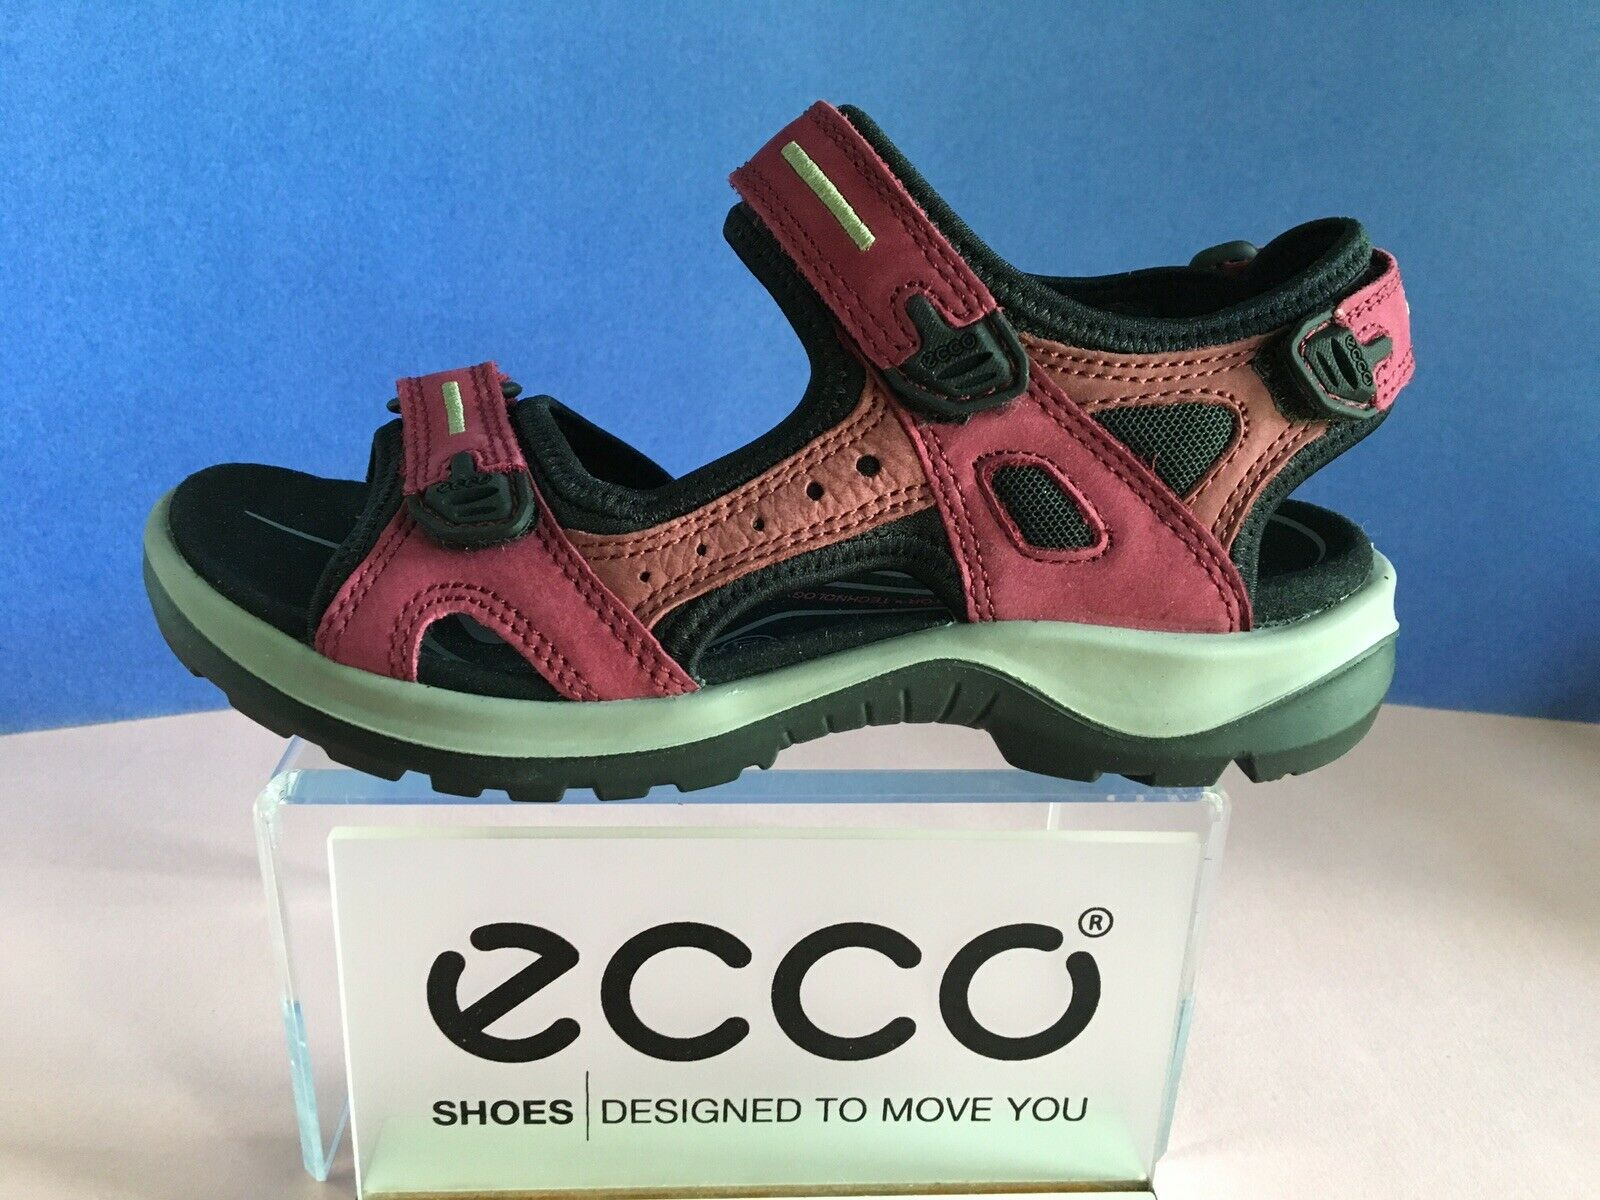 ECCO Women's Yucatan Sandal 69563, Select Size/Color, New, First Quality